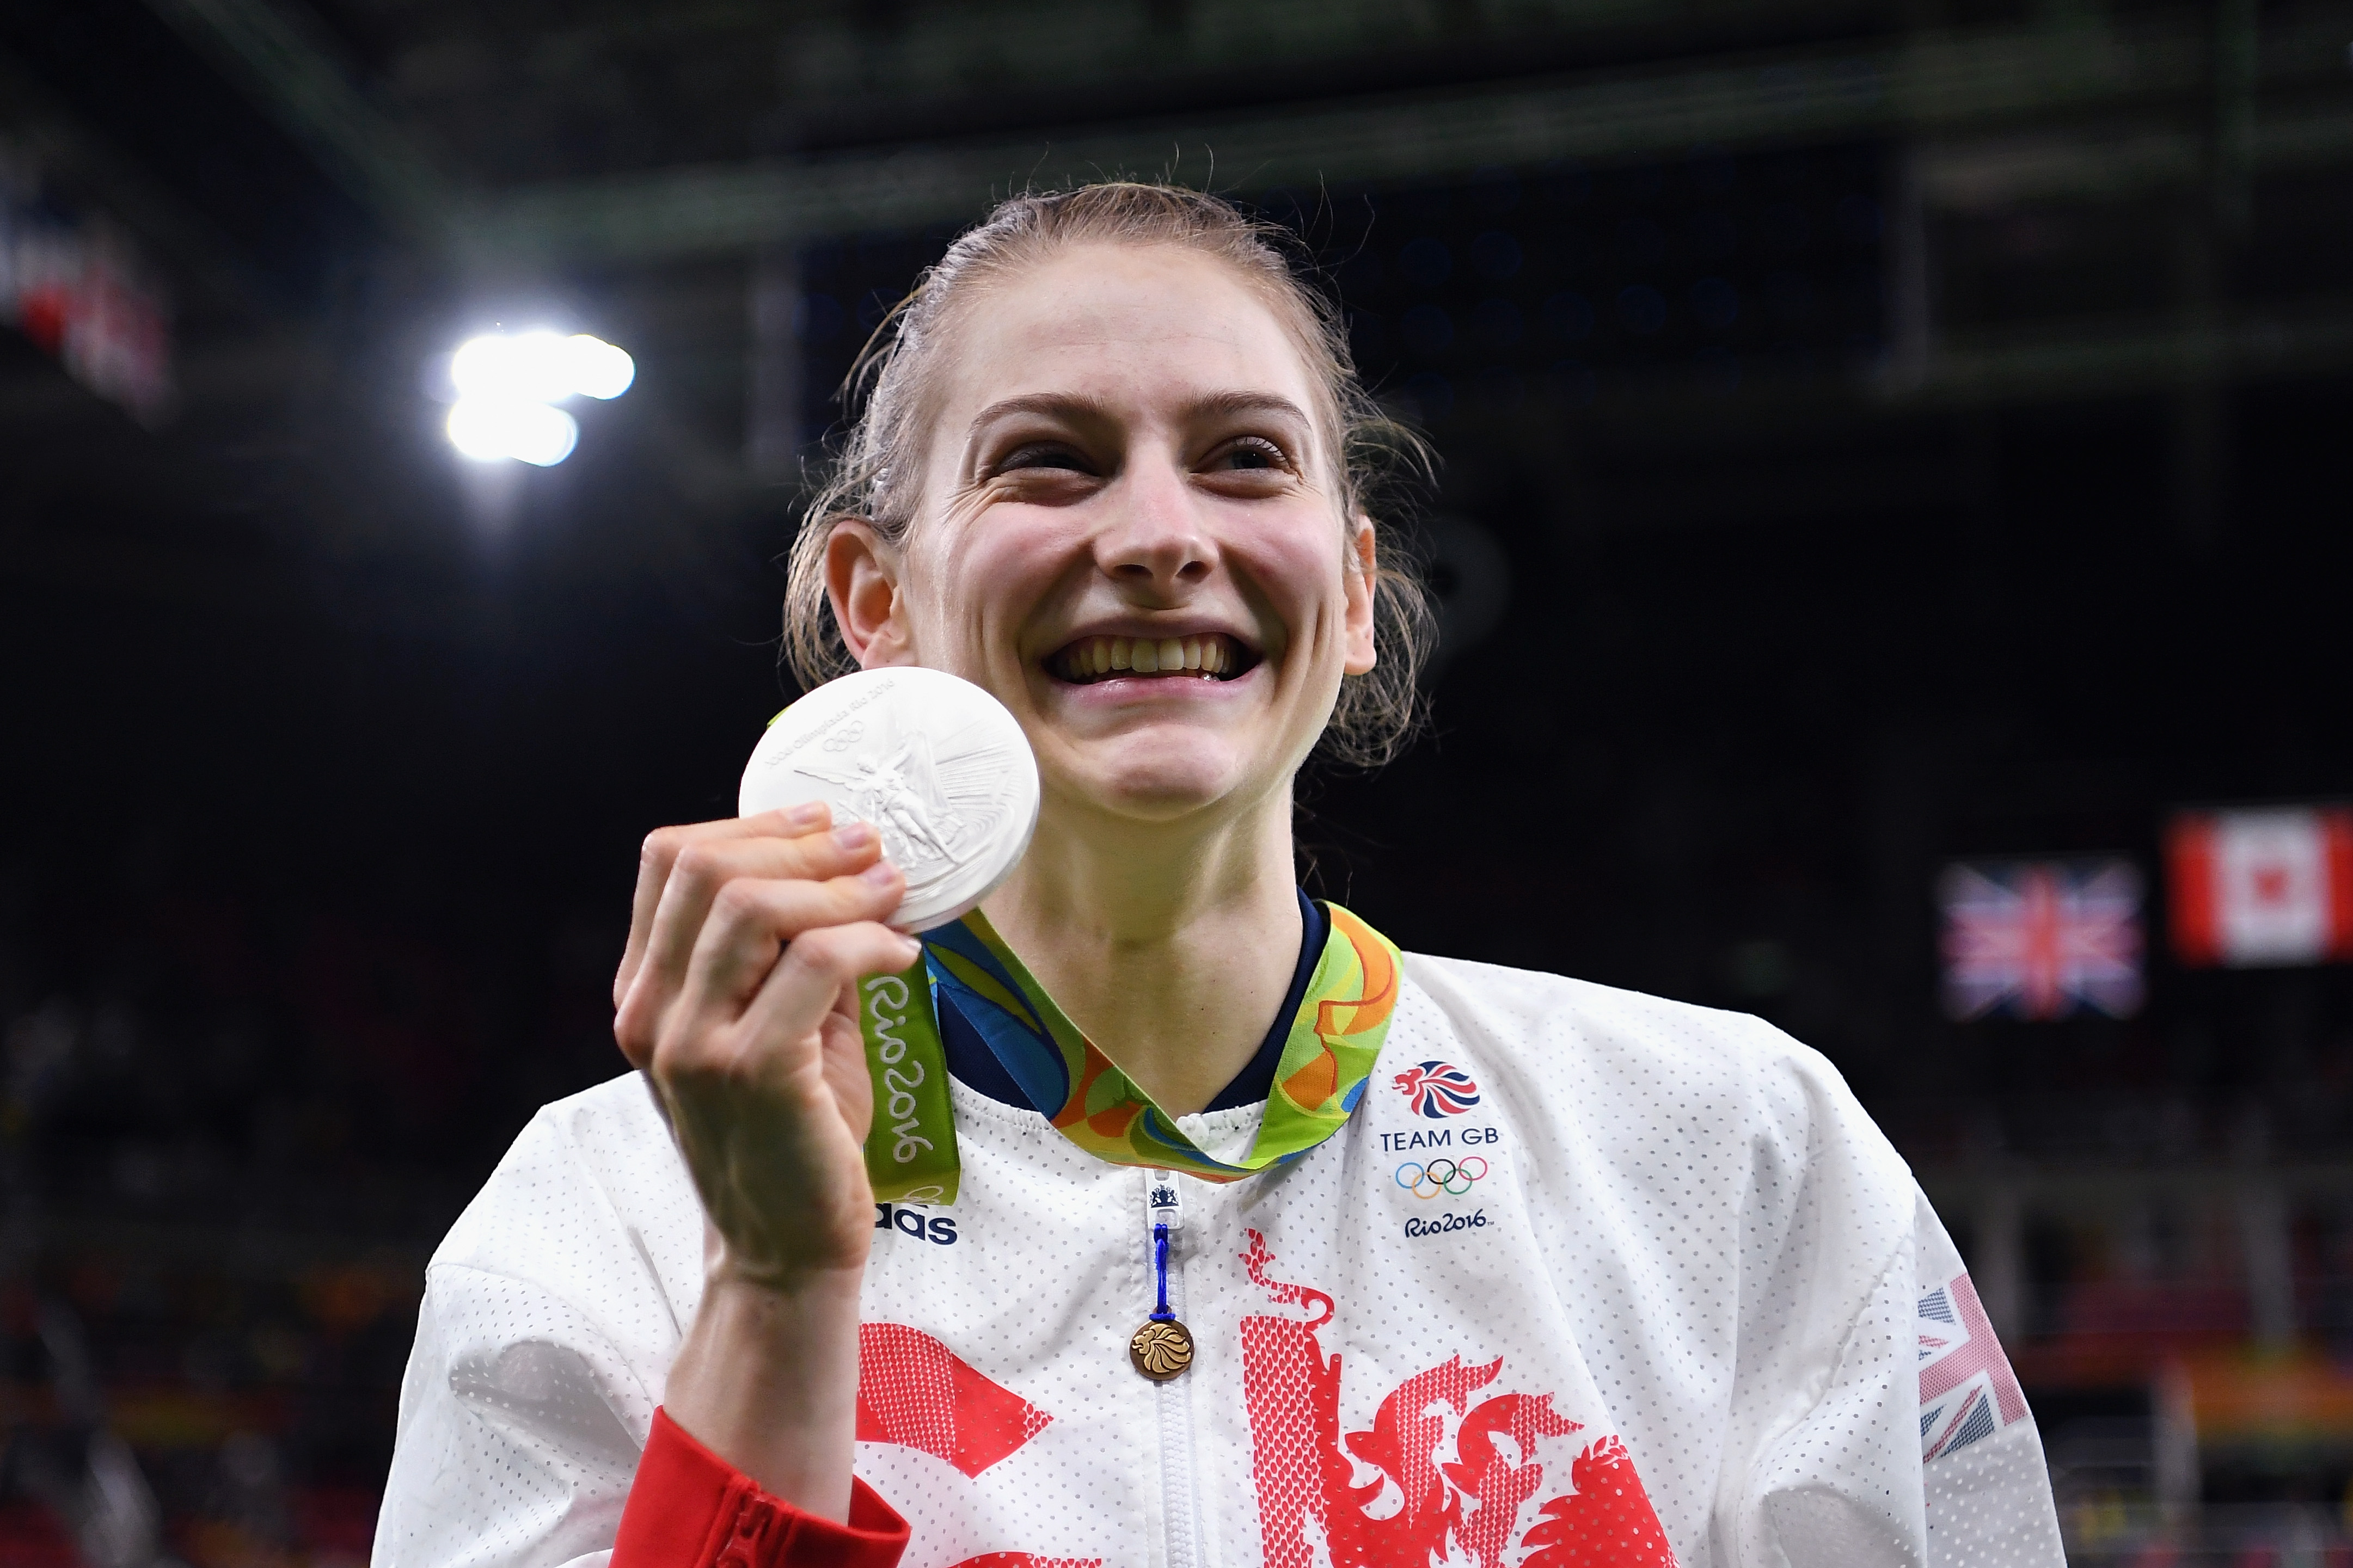 Bryony Page wins second silver medal for Team GB in matter of minutes at the Olympics in Rio